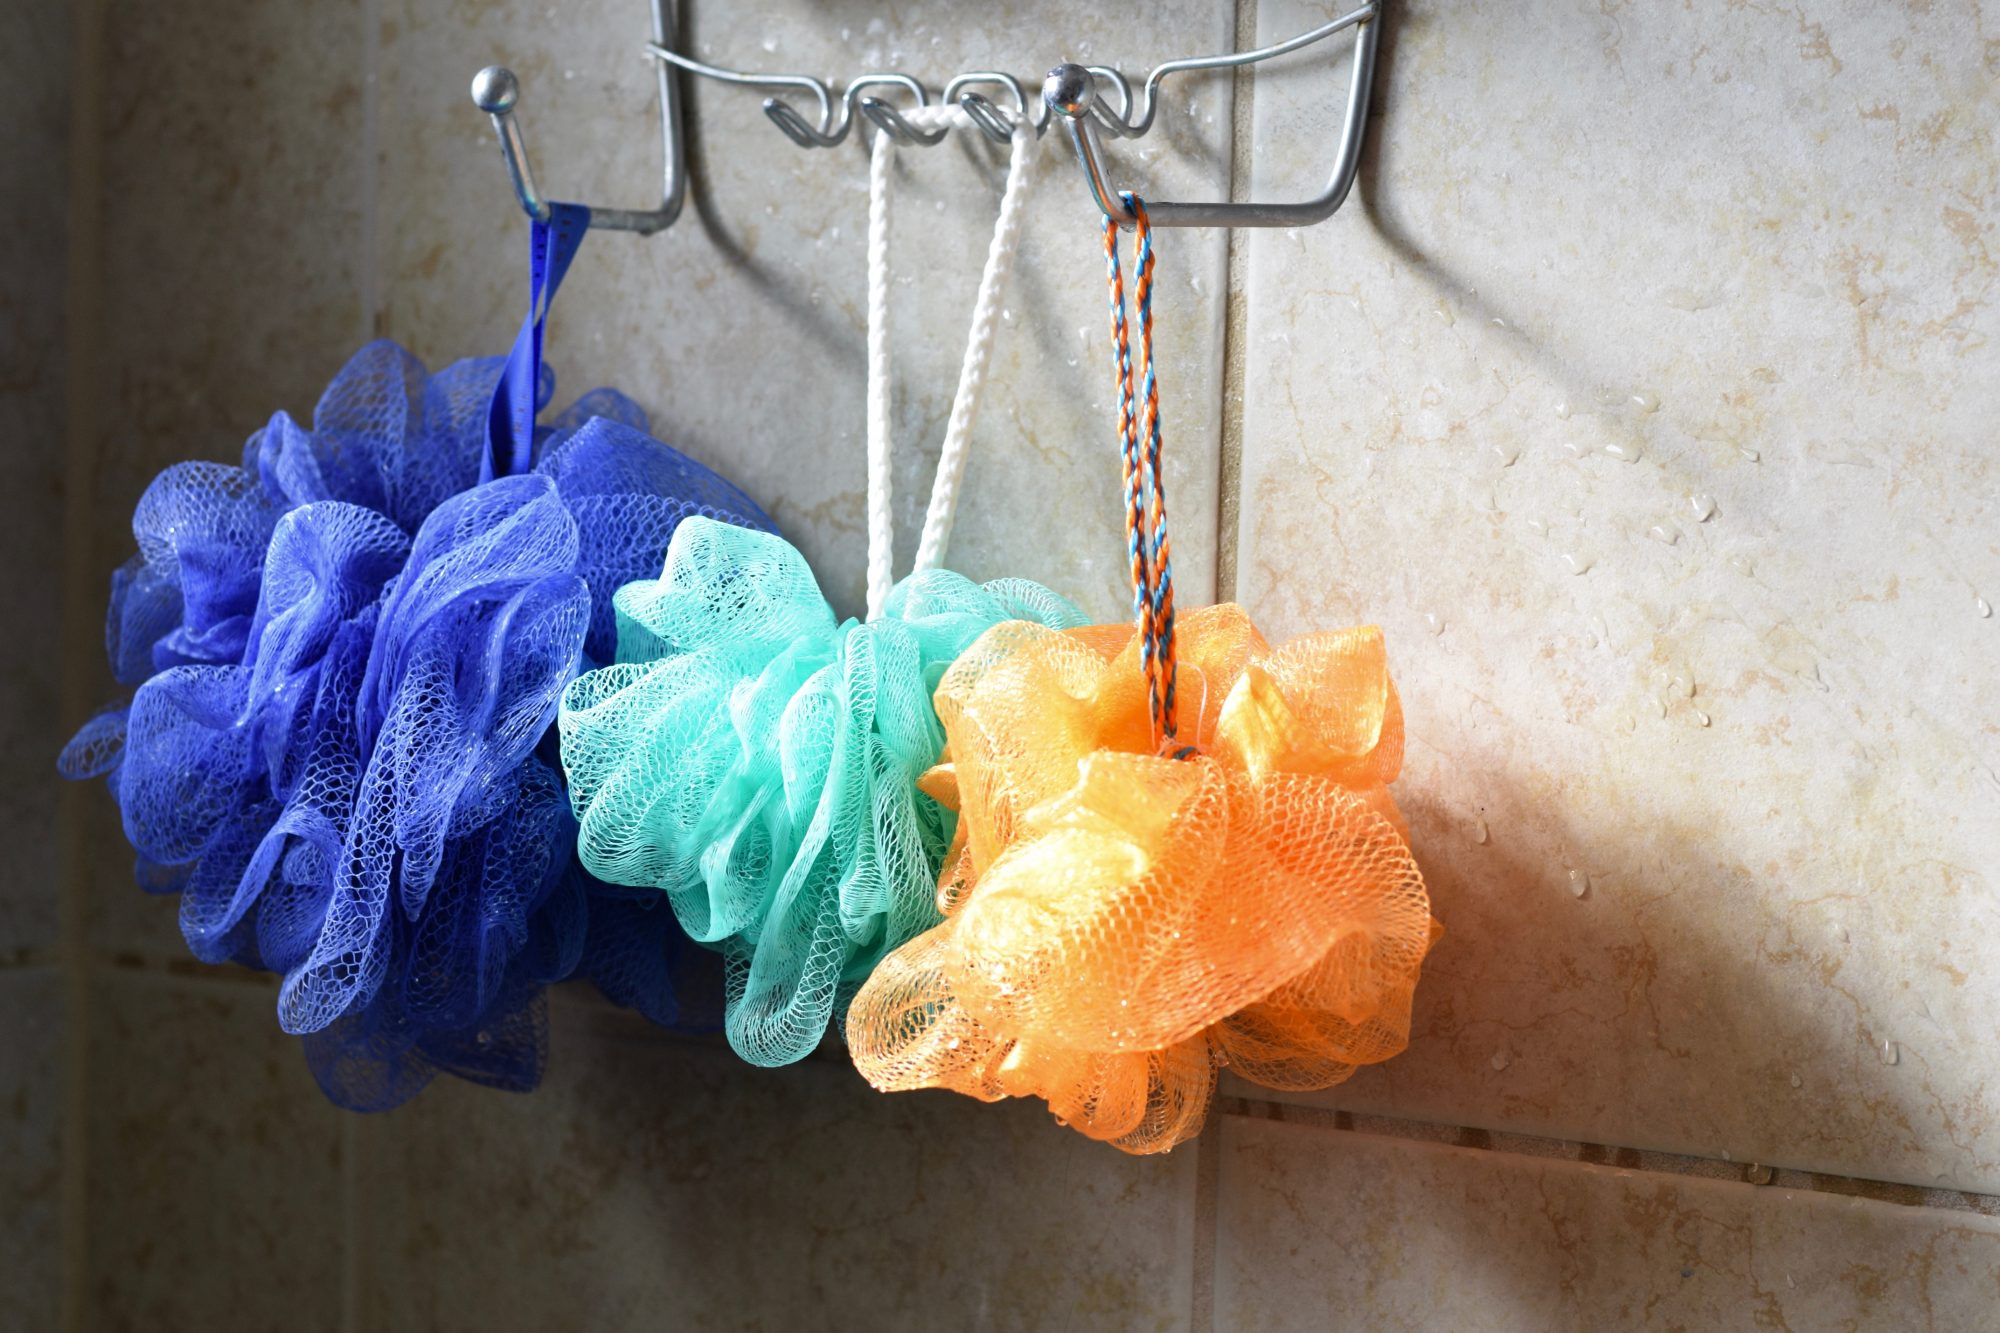 Why Dermatologists Want You to Ditch Your Loofah